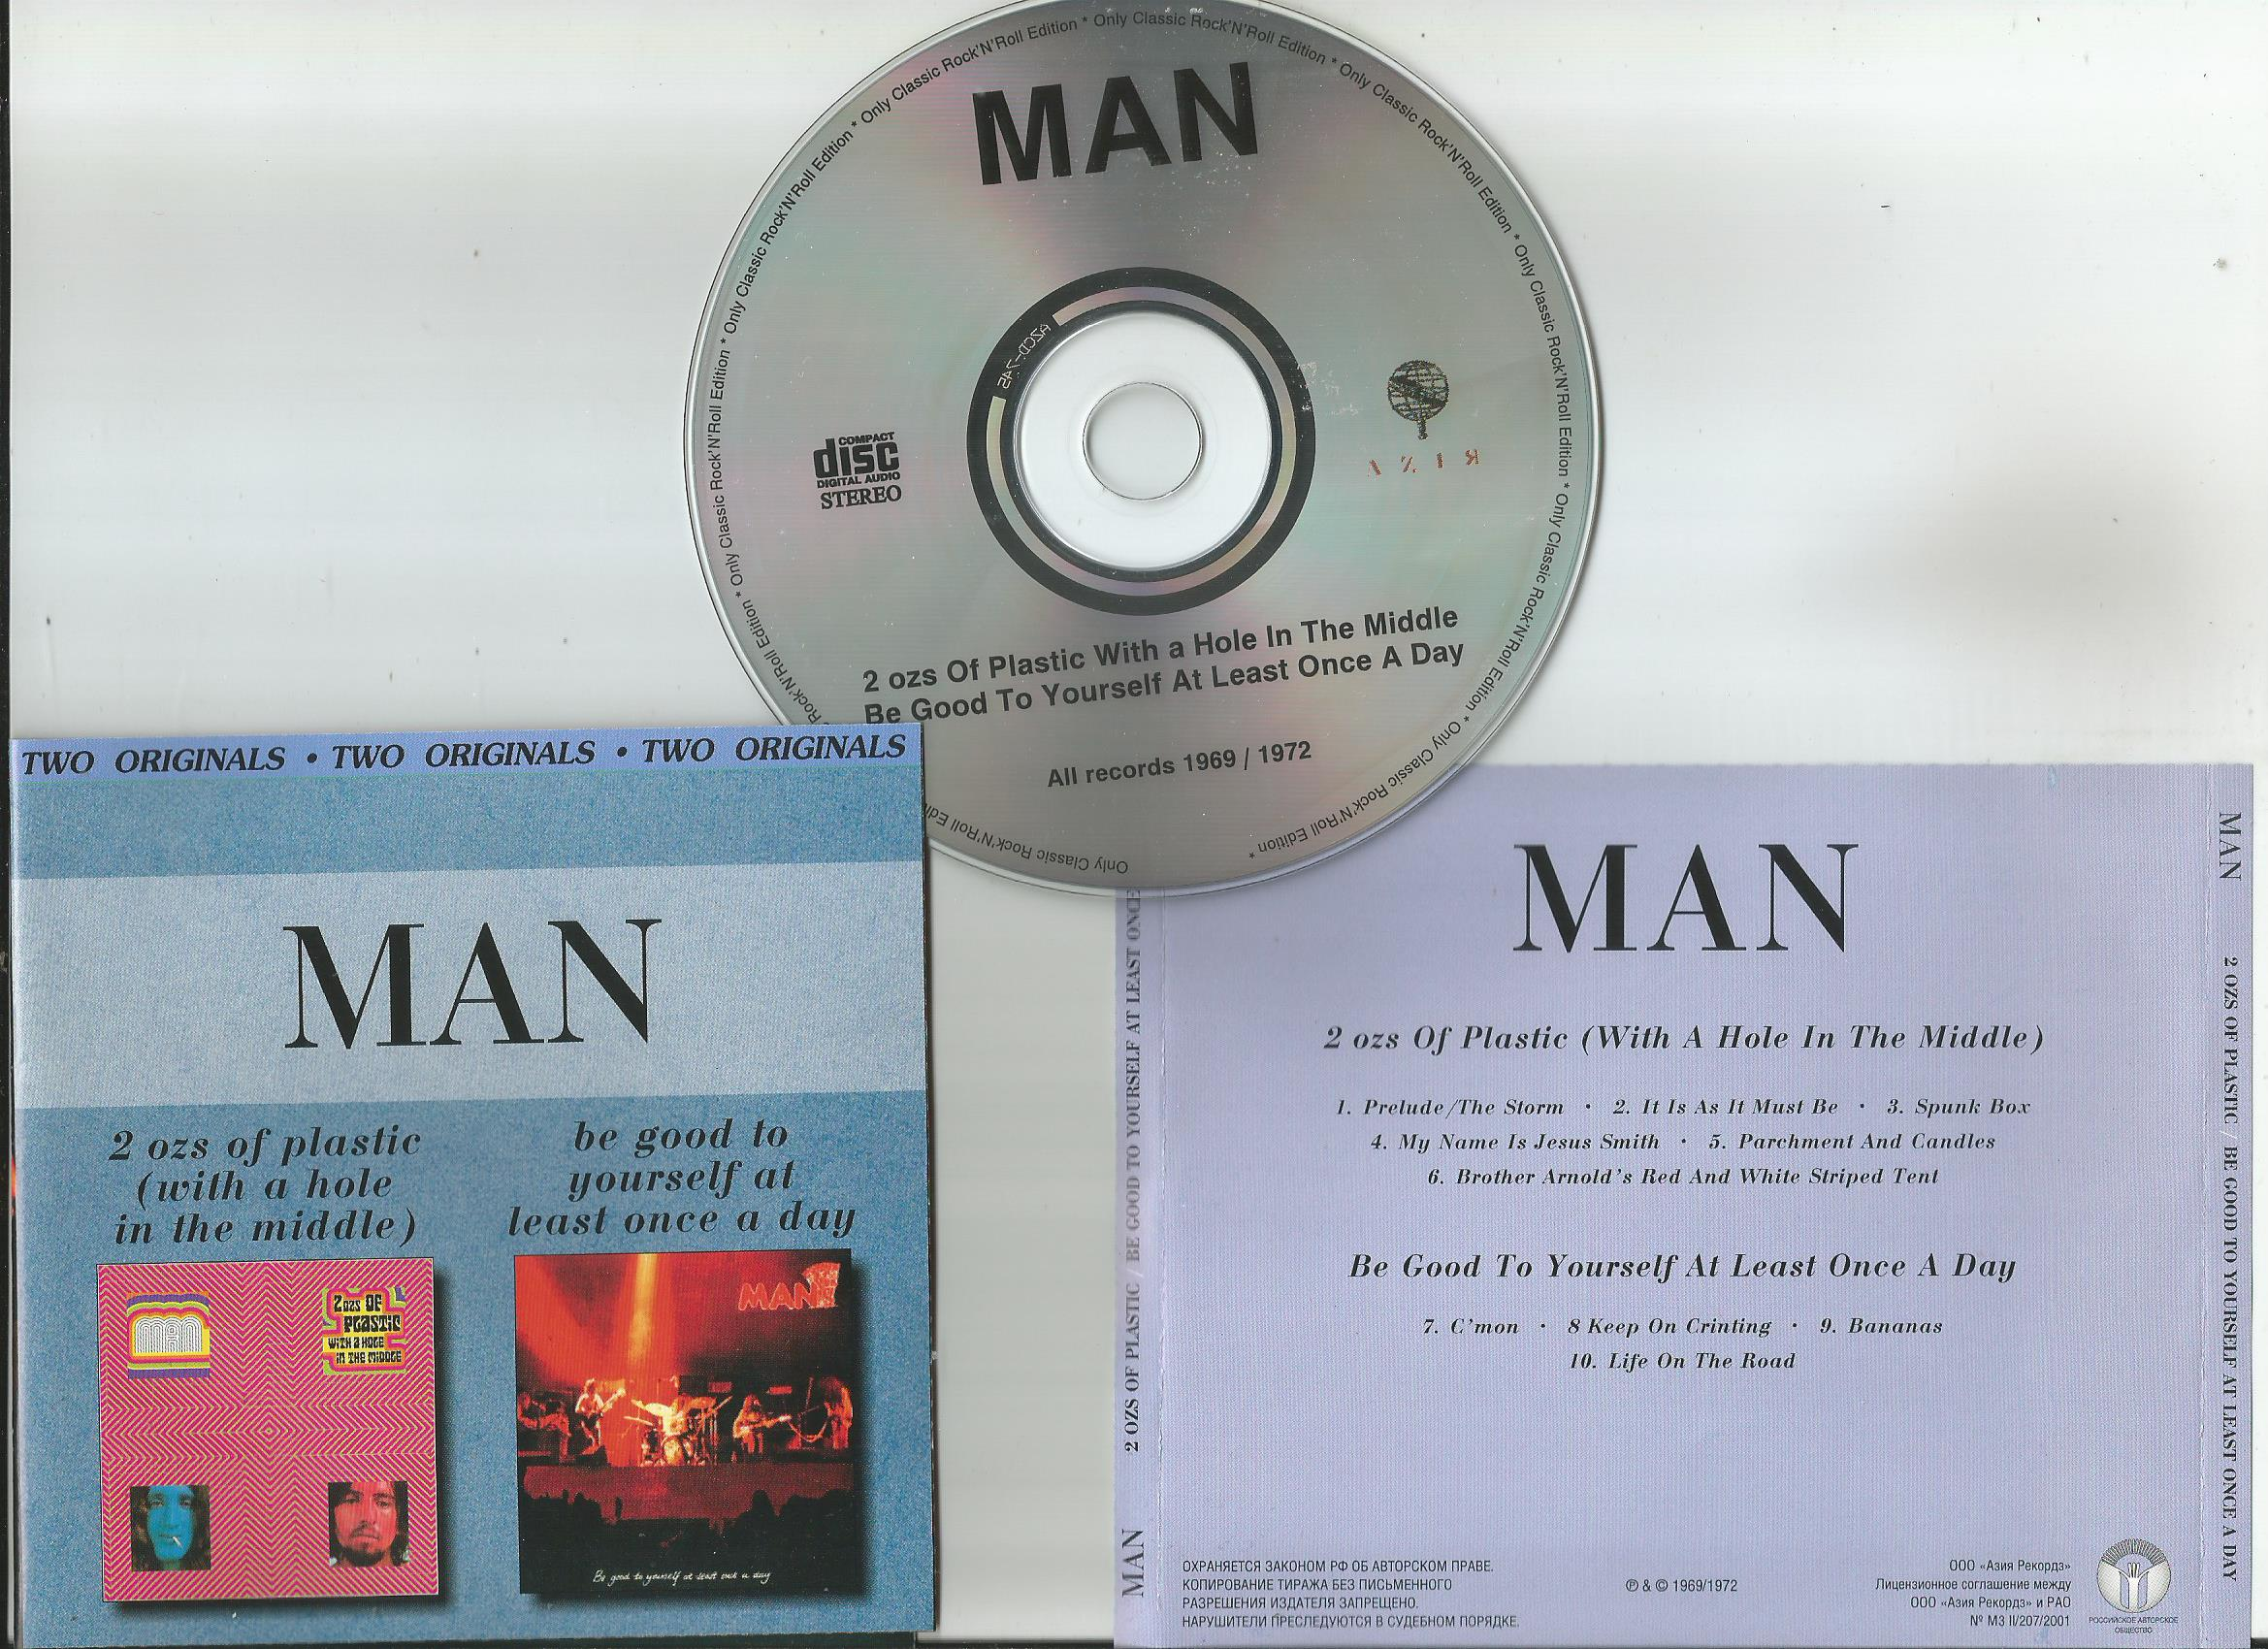 MAN 2 Ozs Of Plastic (With A Hole In The Middle)/ Be Good To Yourself At Least Once A Day (2 in 1CD)